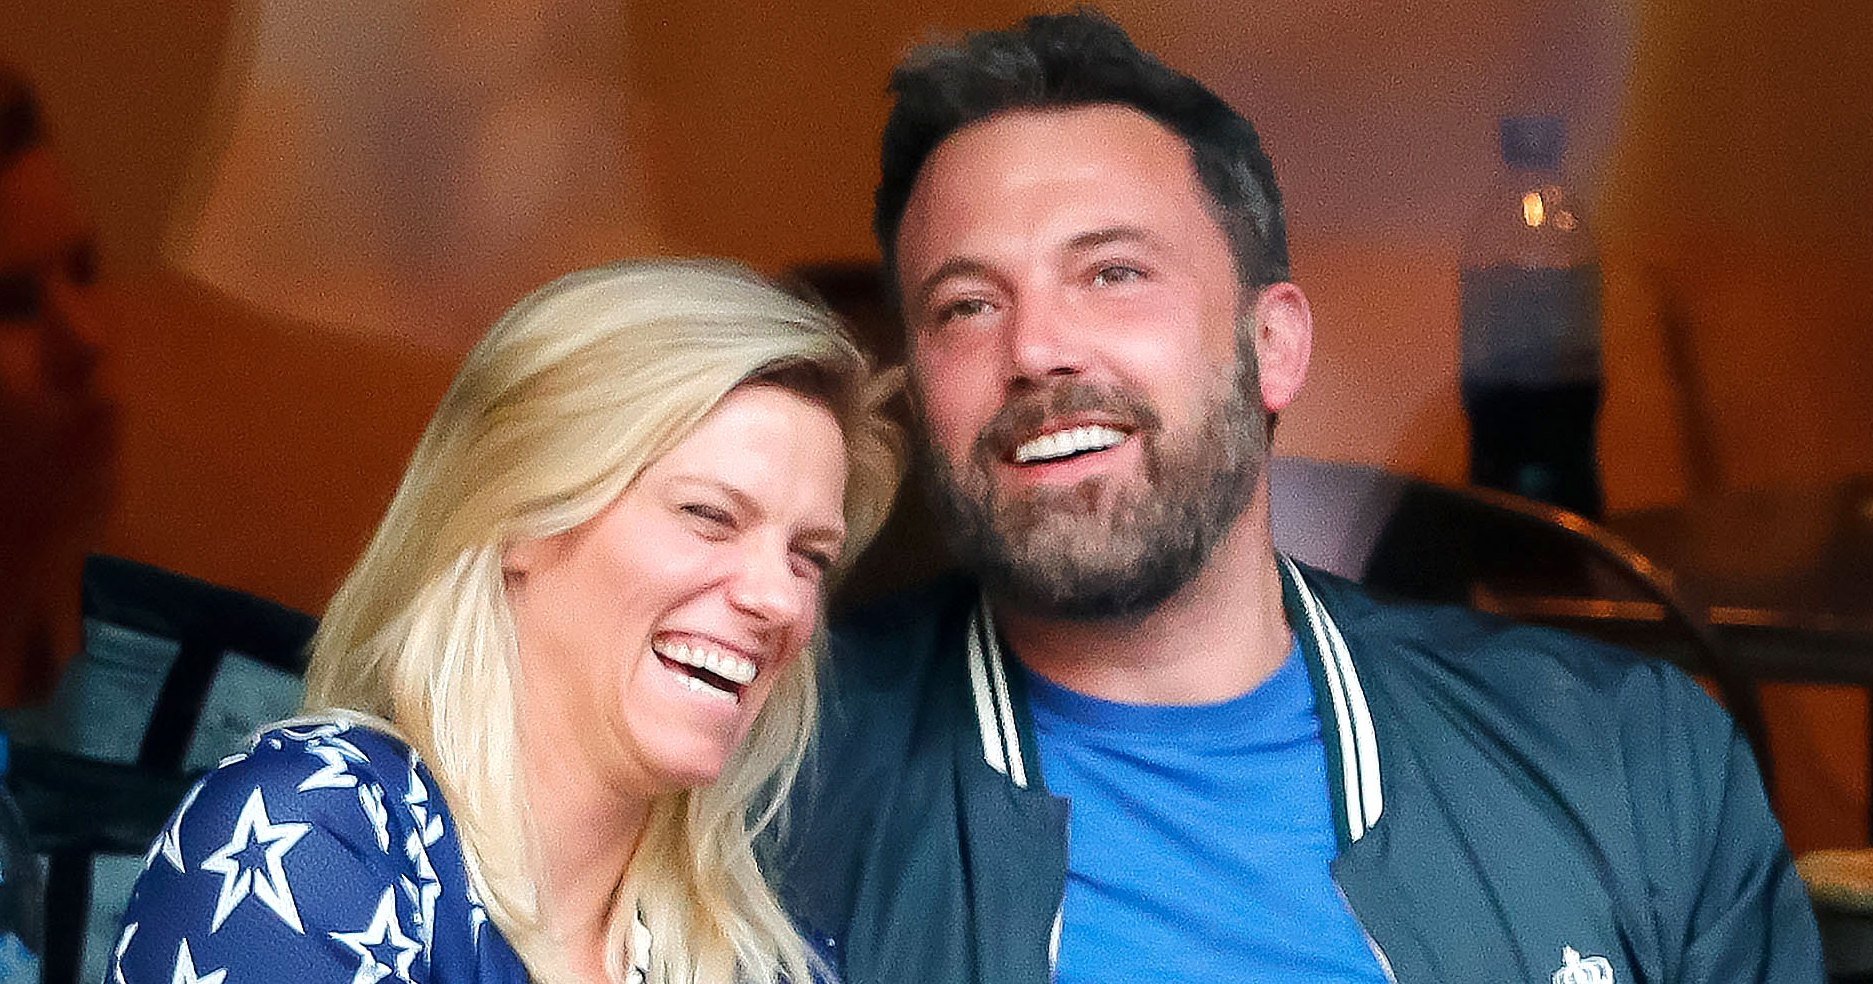 Ben Affleck and Lindsay Shookus Have 'Been Talking' Again: 'It Wouldn't Be Surprising If They Got Back Together'